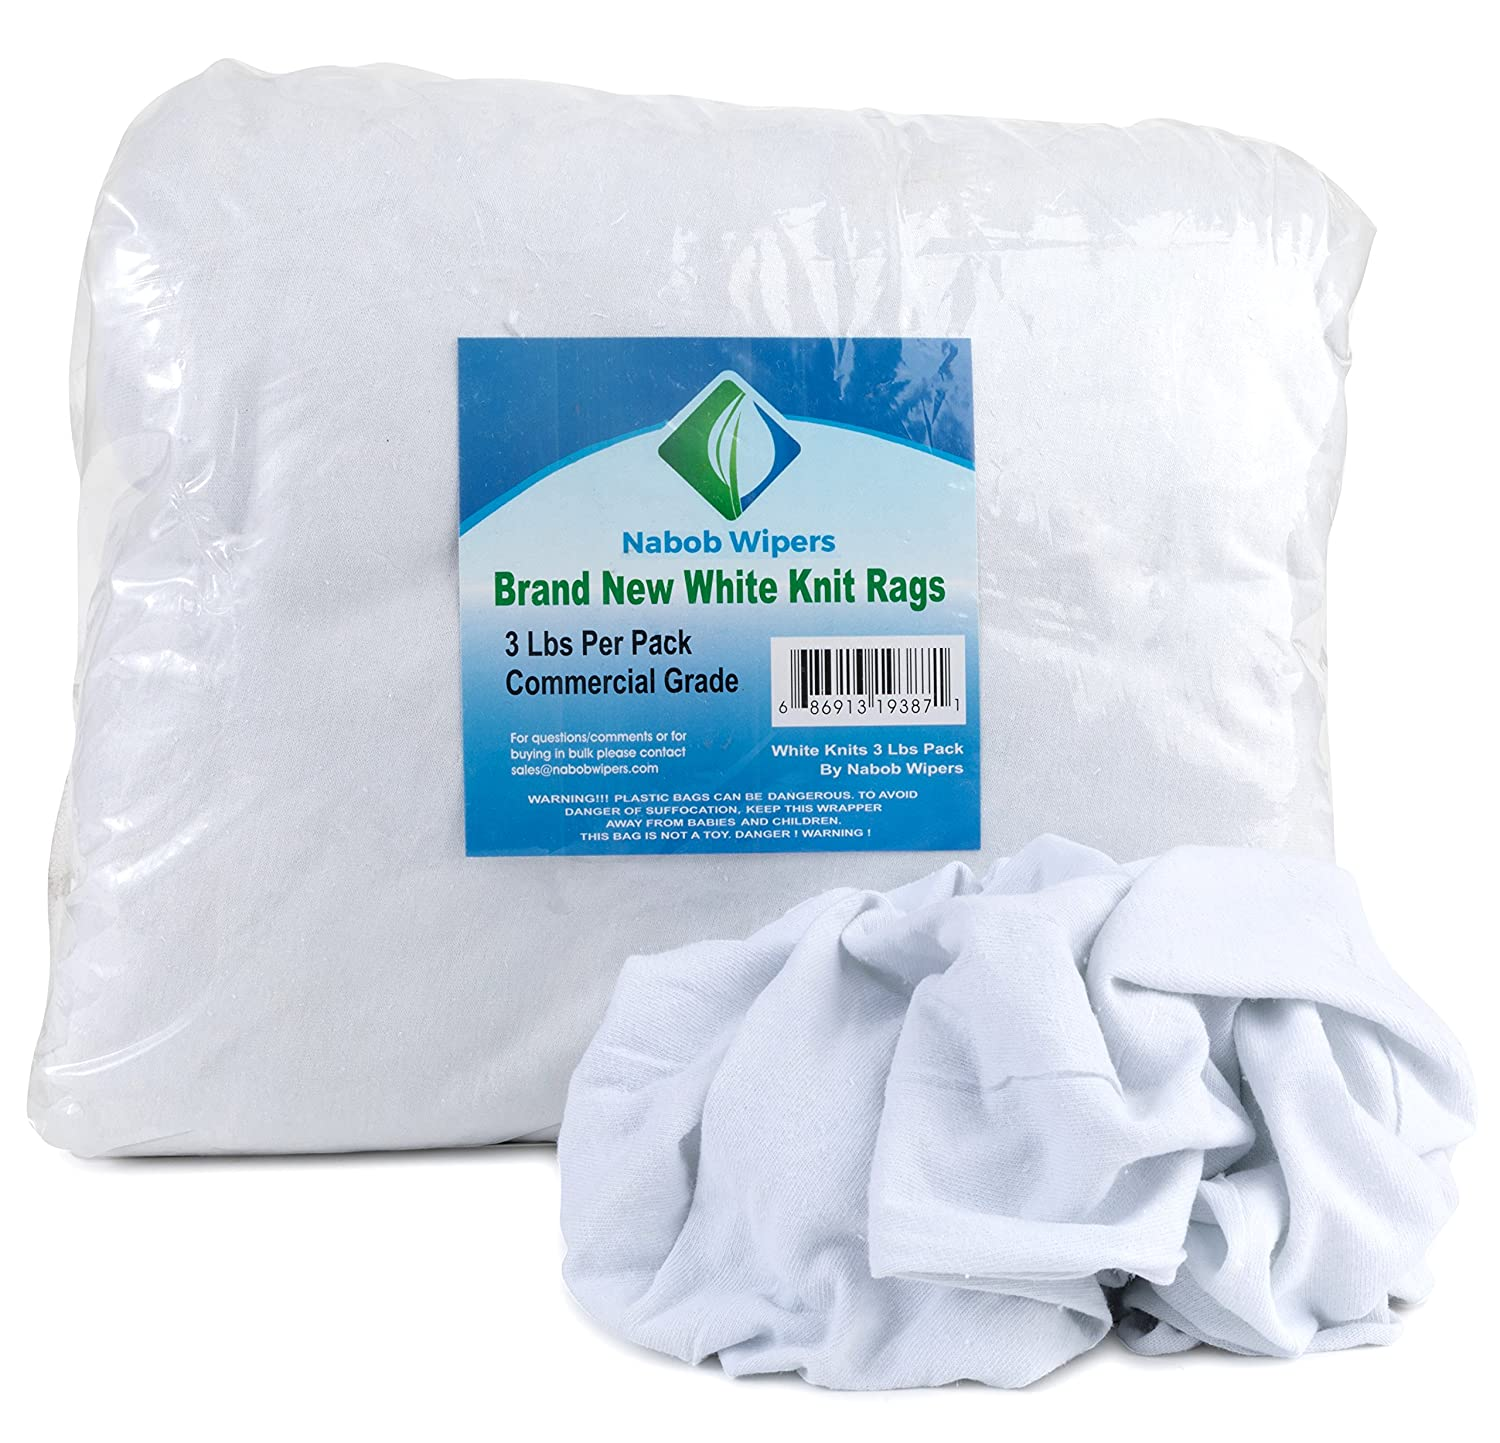 New White T-Shirt Cotton Knit Rags, Premium Quality Cloth Rags, Perfect for General Cleaning, Spills,Home,Staining,Polishing And More By Nabob Wipers (3 Lb Bag)